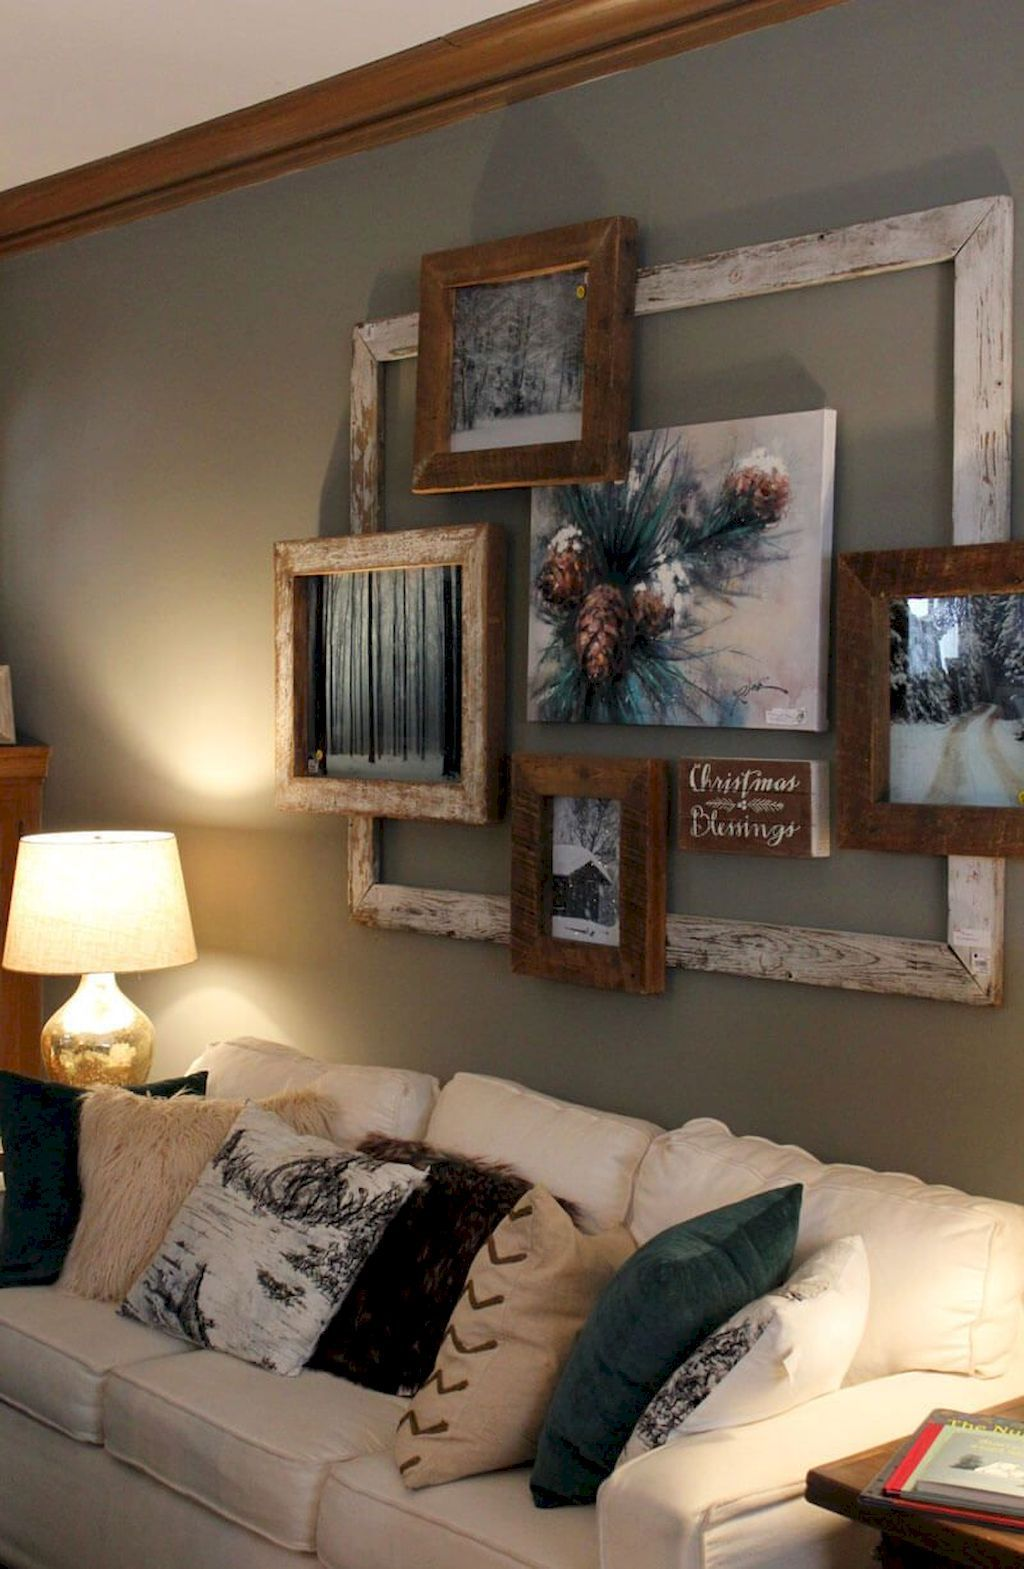 30 Farmhouse Rustic Home Decor Ideas   30th, House and Living rooms